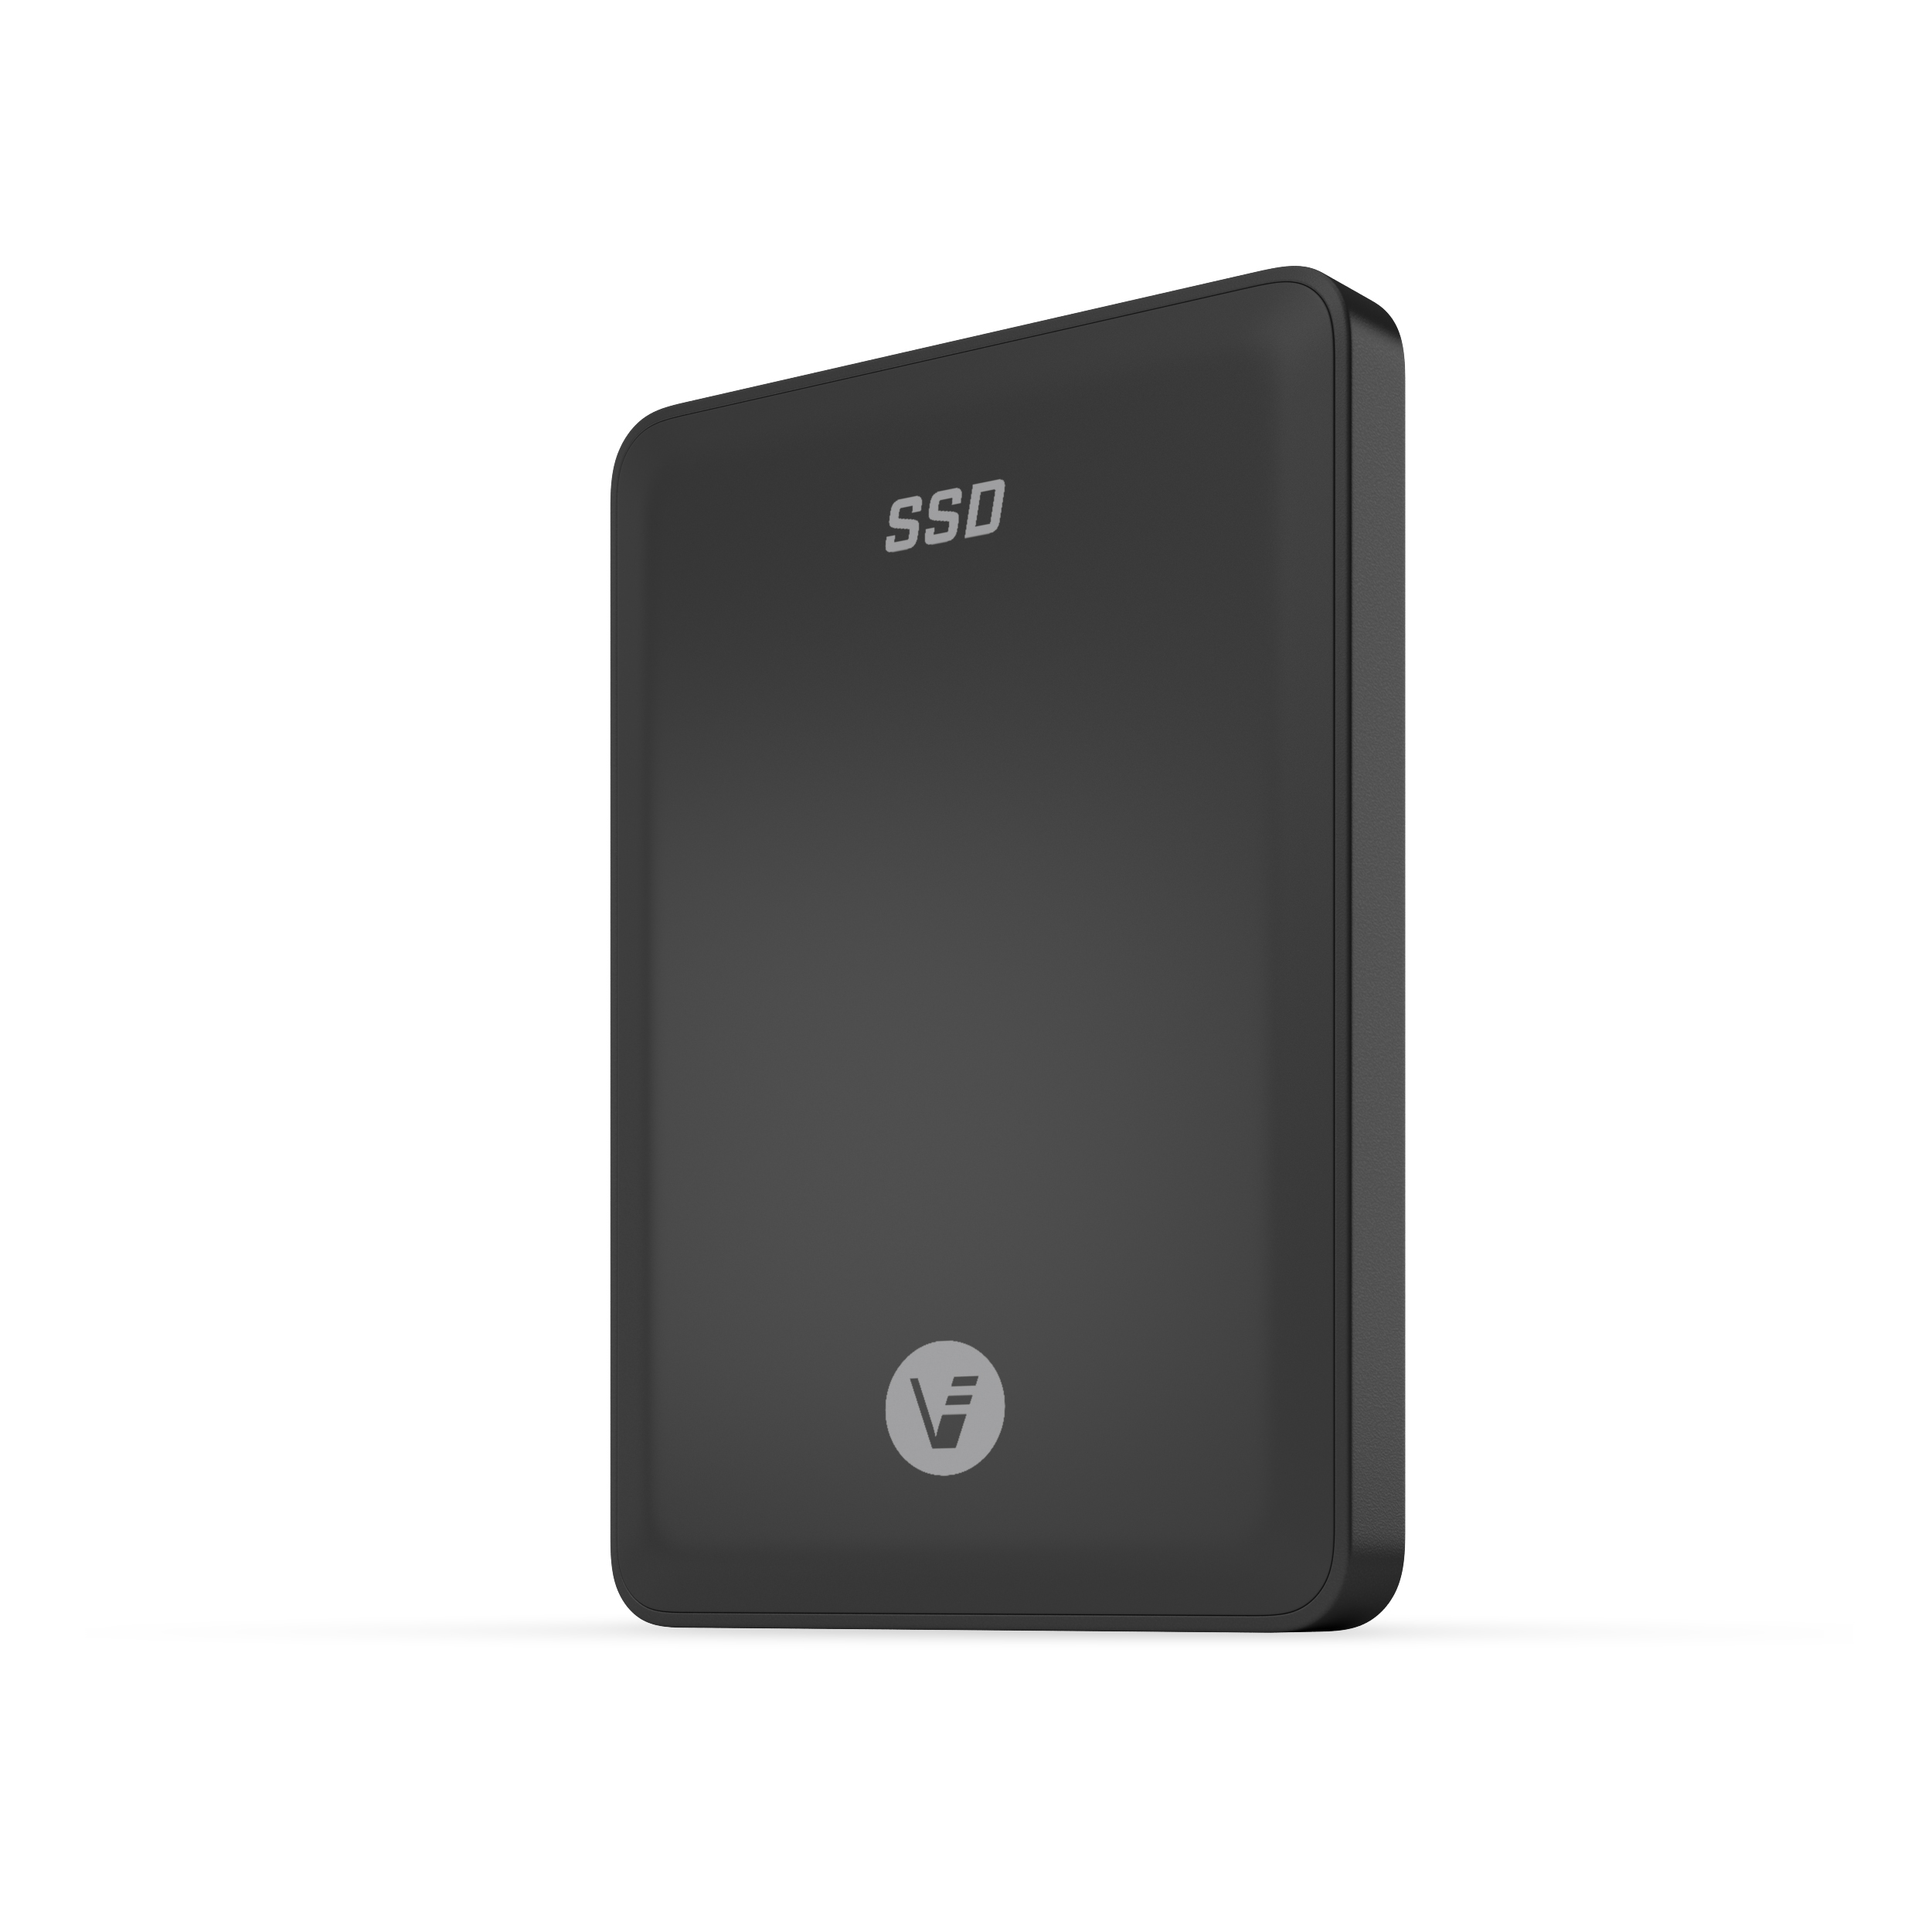 VectoTech Rapid 4TB External SSD USB 3.0 Portable Solid S...